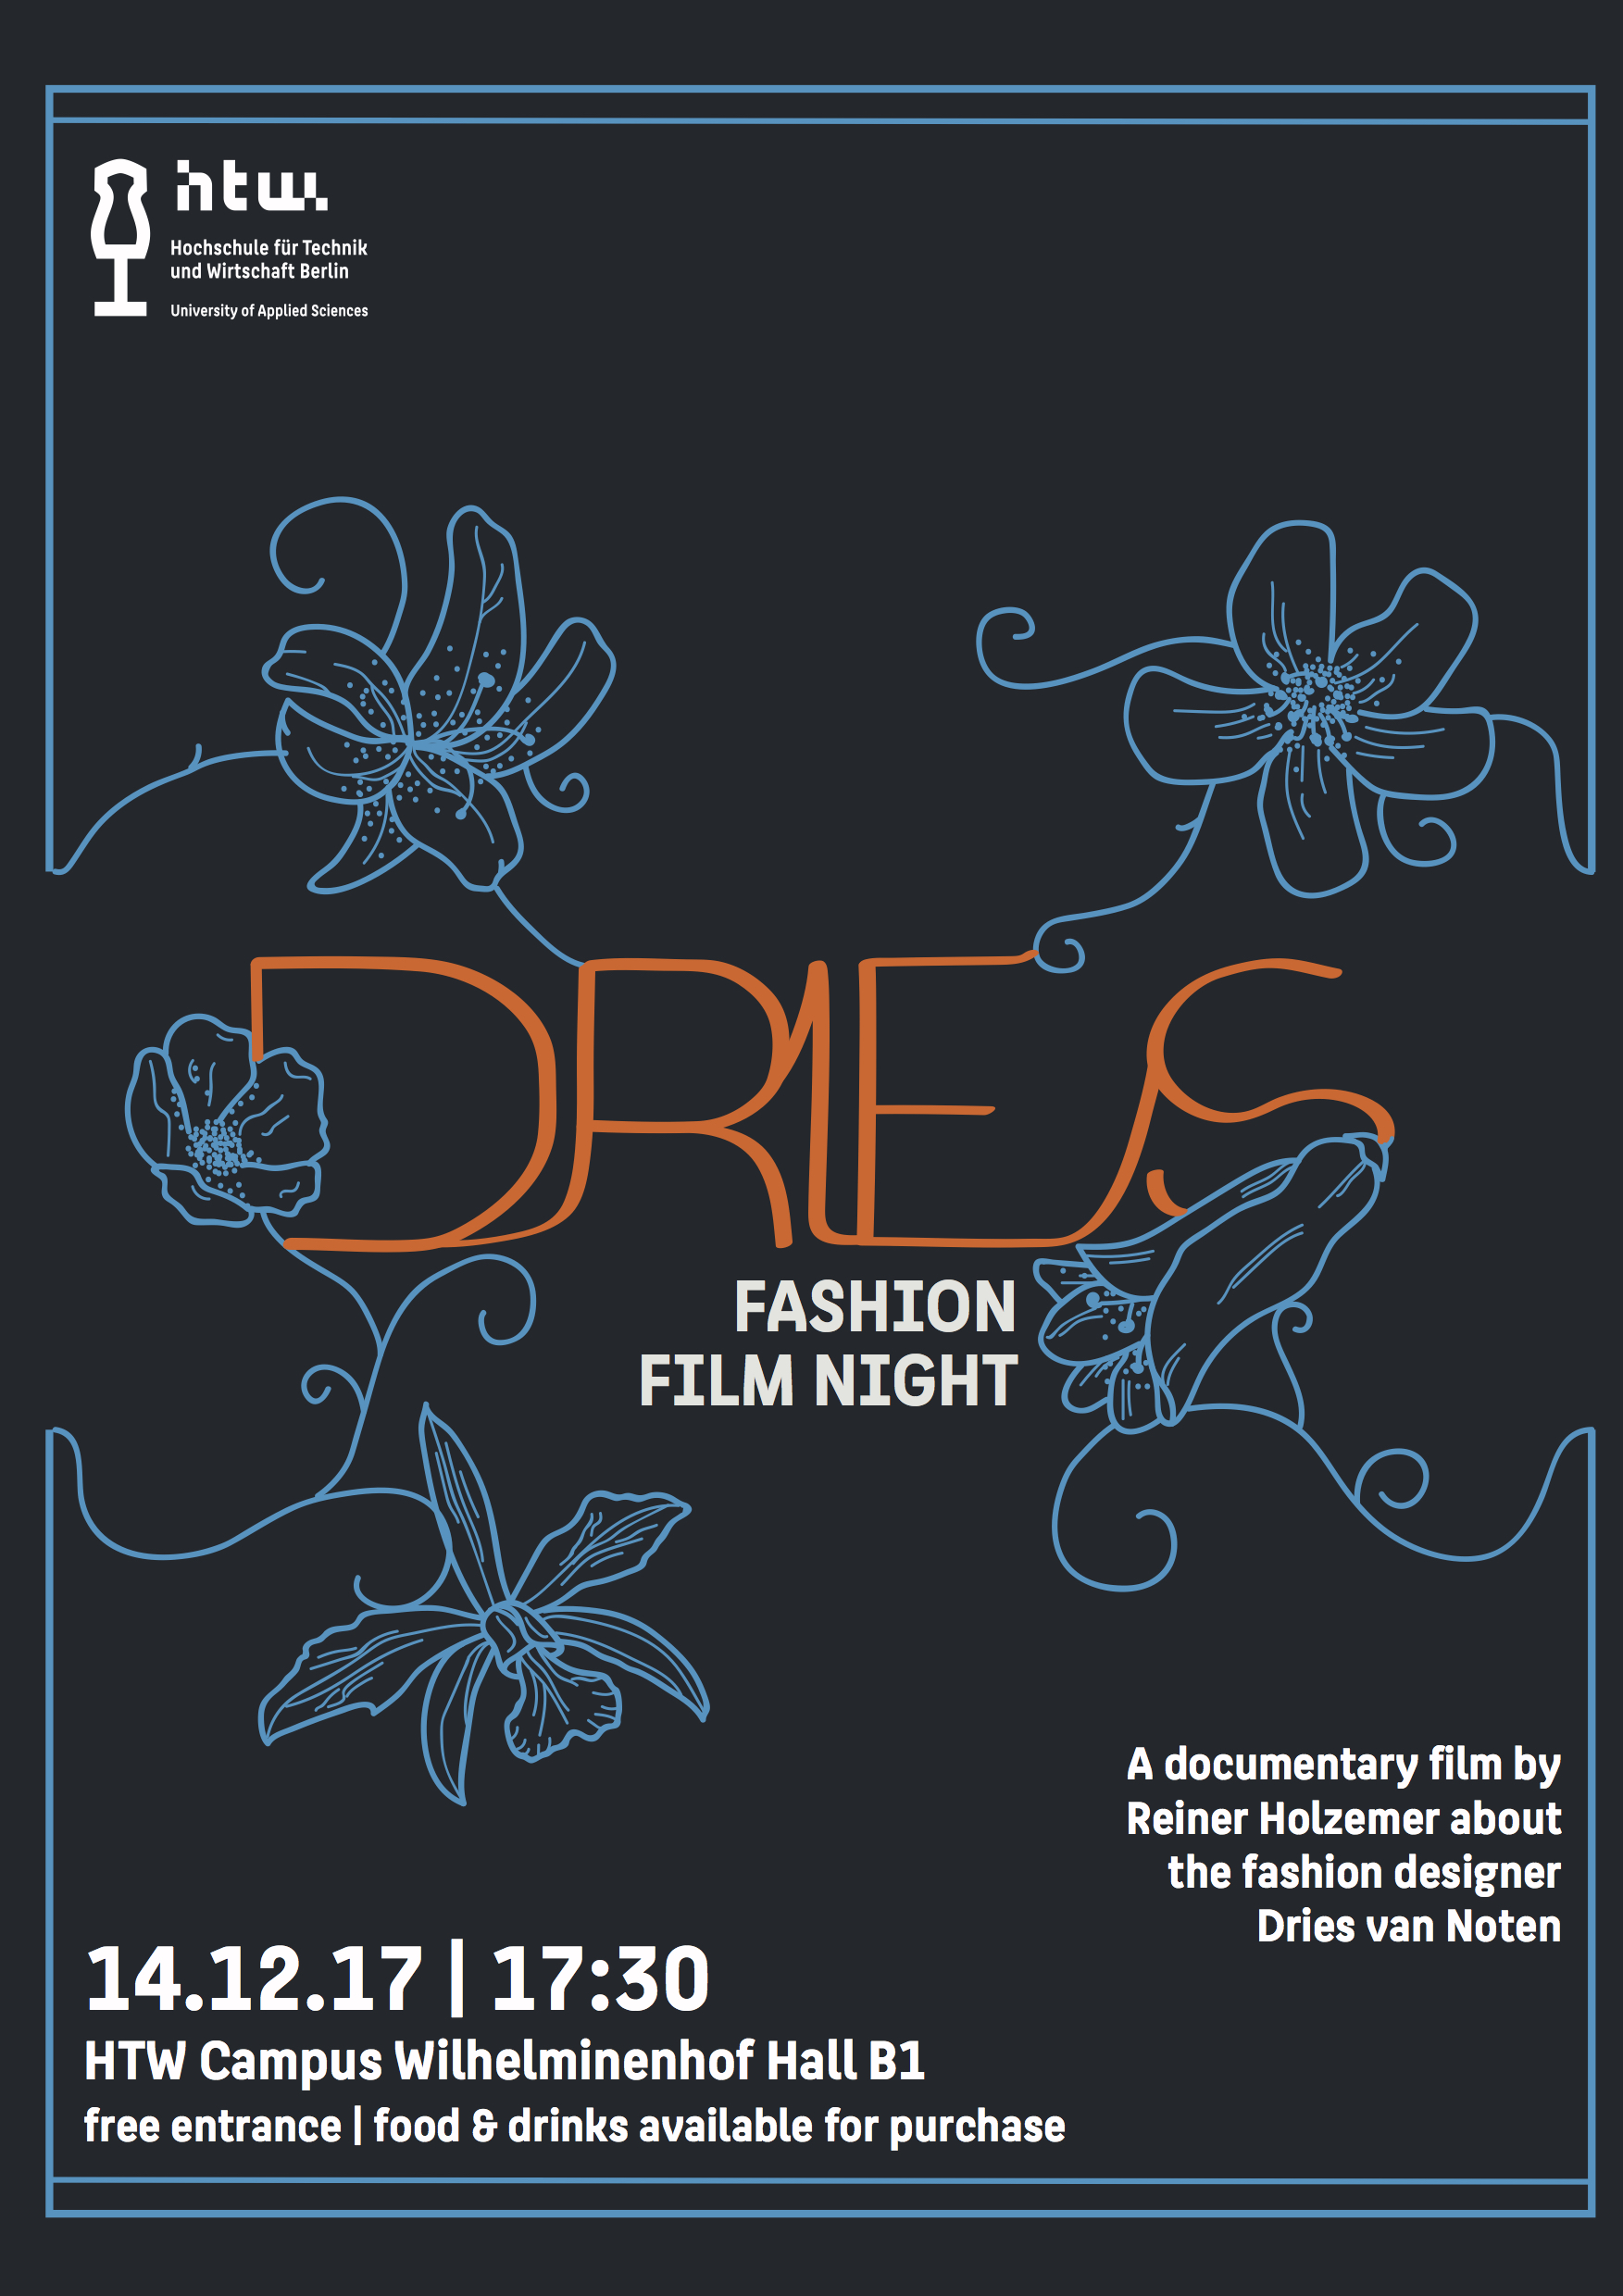 DRIES_poster_final